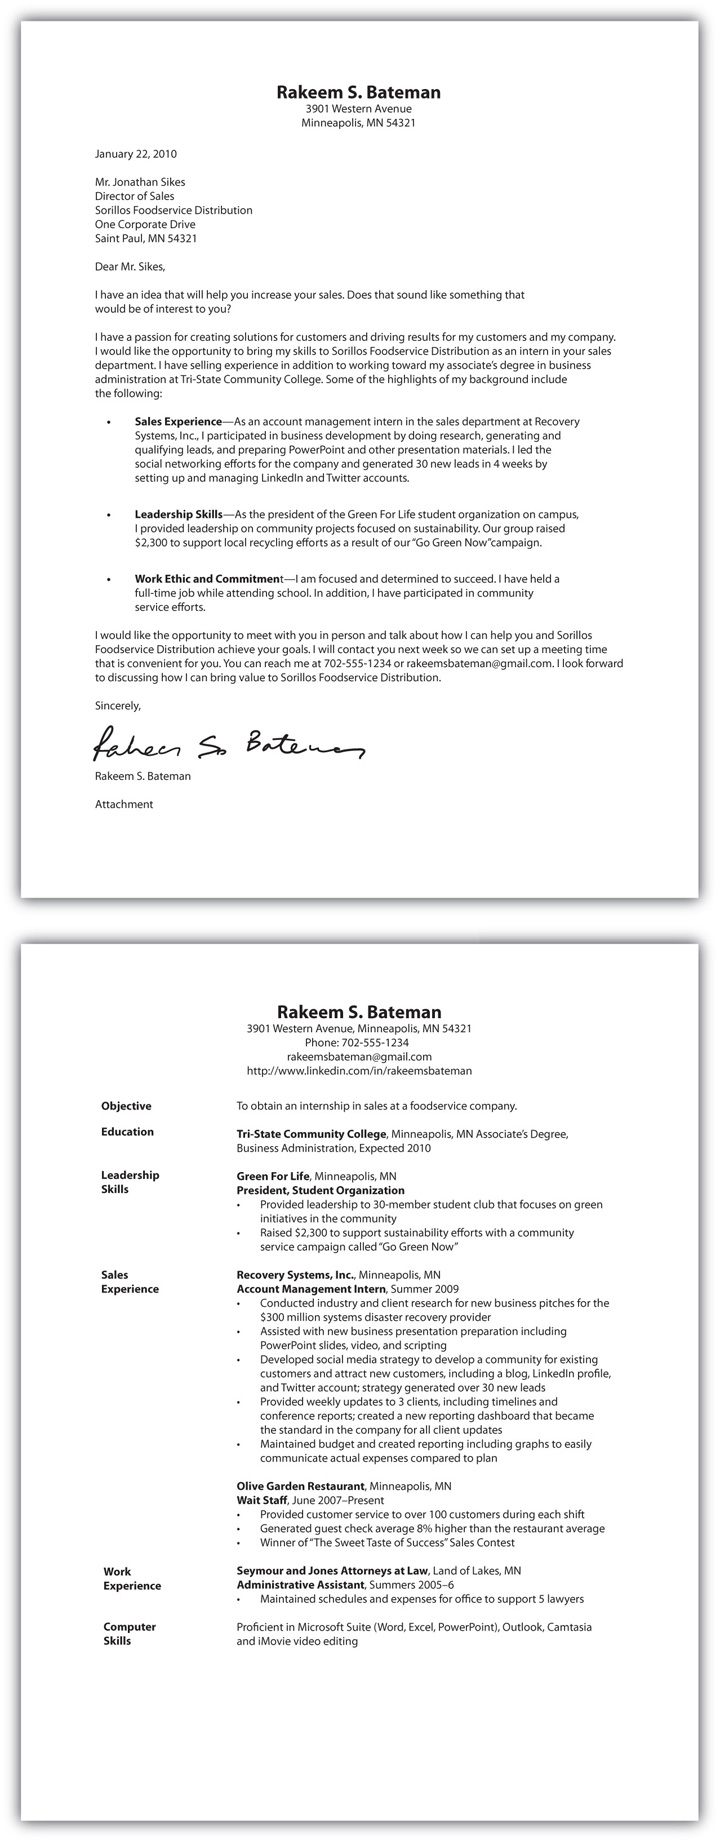 selling résumé and cover letter essentials generic for resume uwaterloo critique Resume Generic Cover Letter For Resume